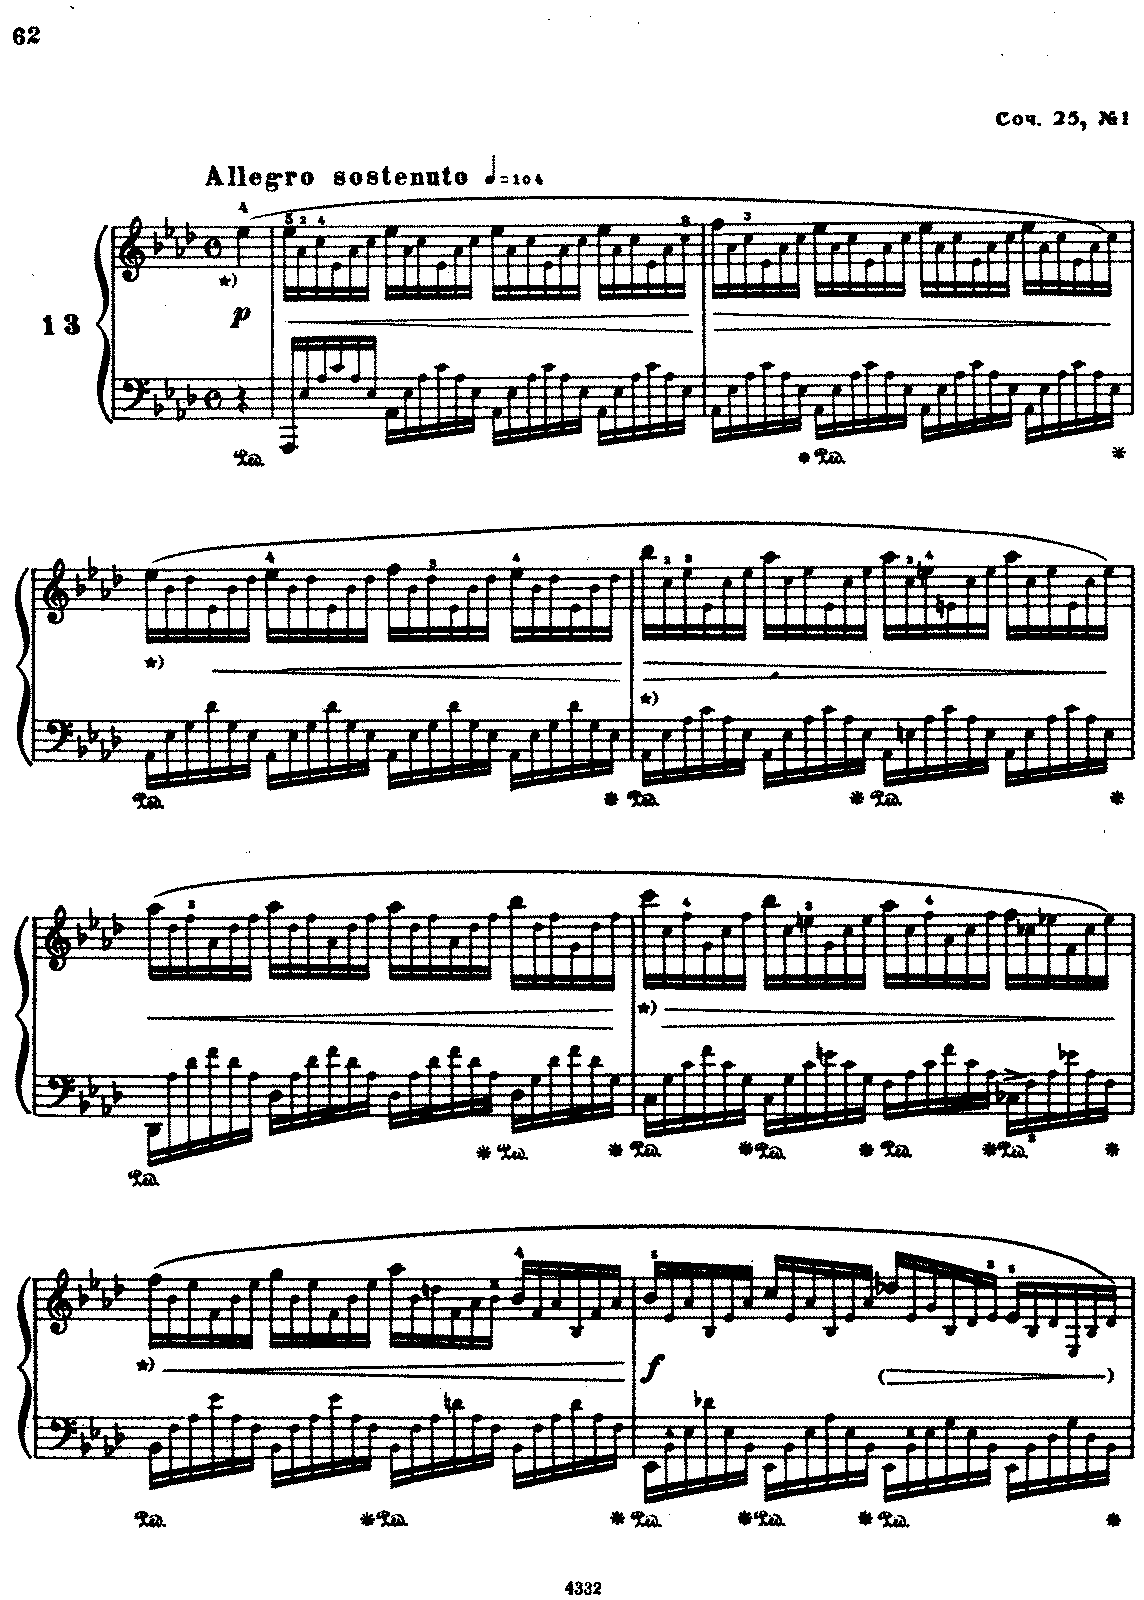 Etudes op25 chopin frdric imslppetrucci music library etudes op25 chopin frdric imslppetrucci music library free public domain sheet music hexwebz Image collections